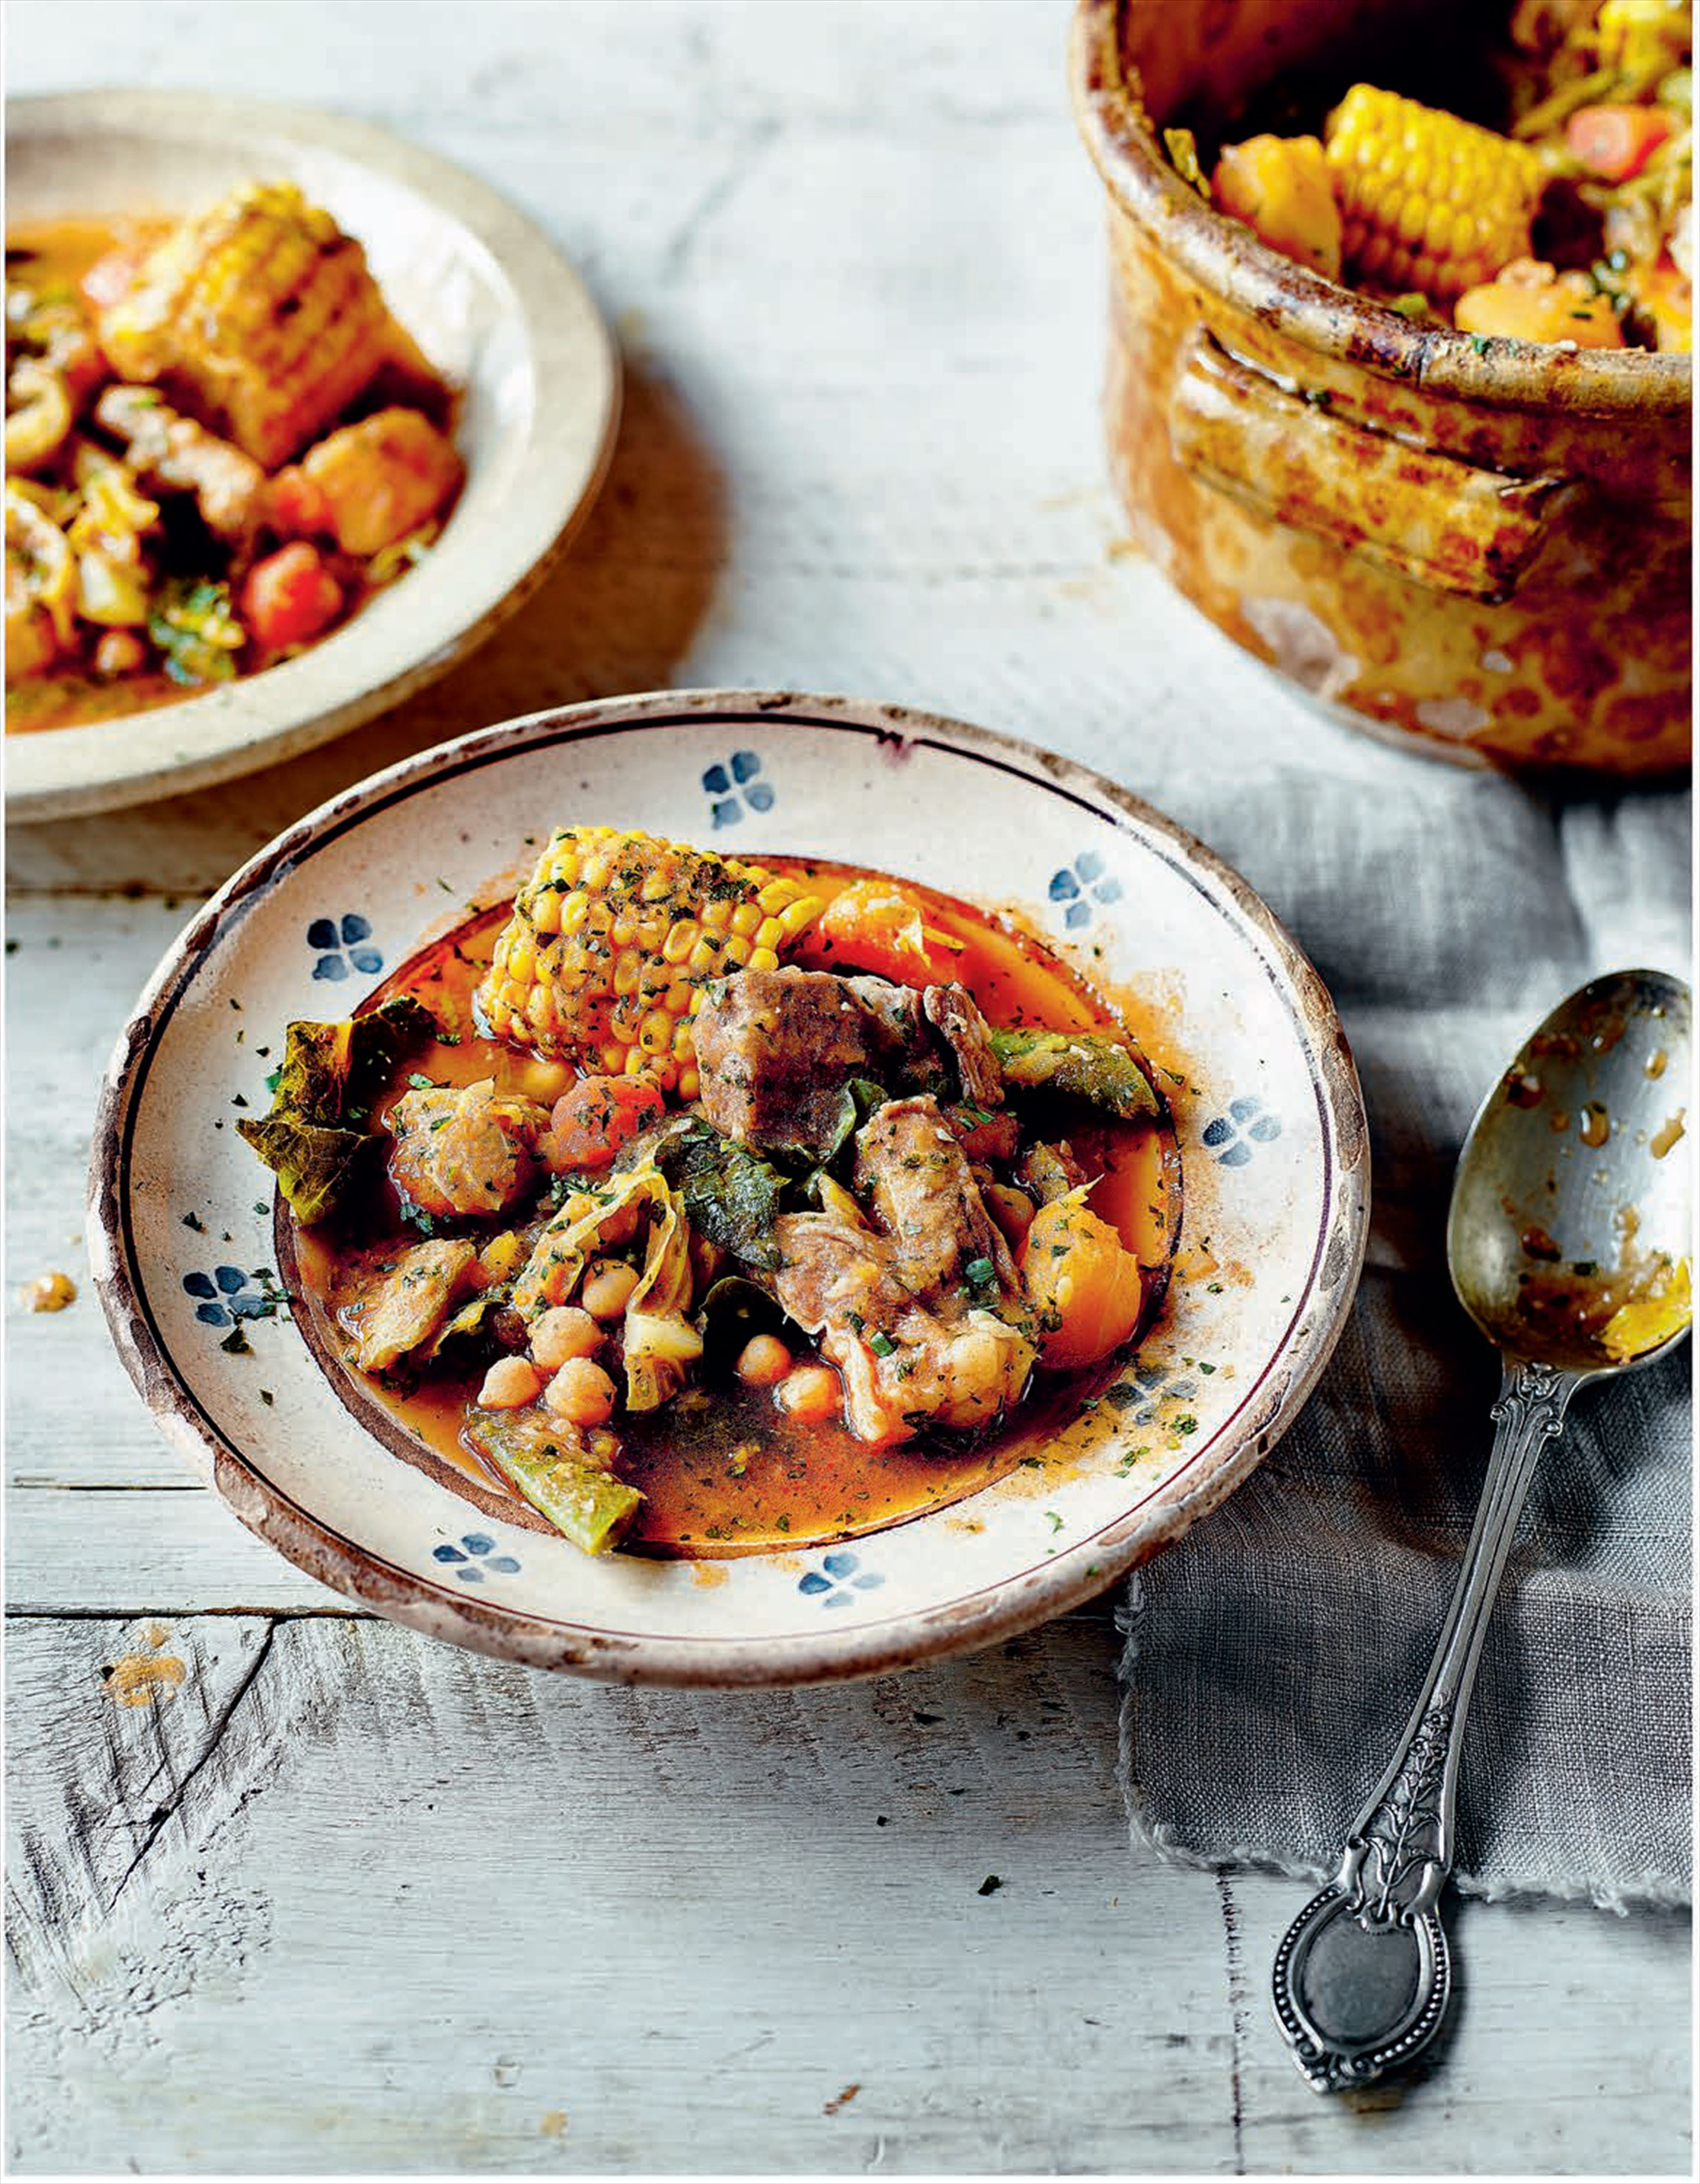 Canary Island meat and vegetable stew